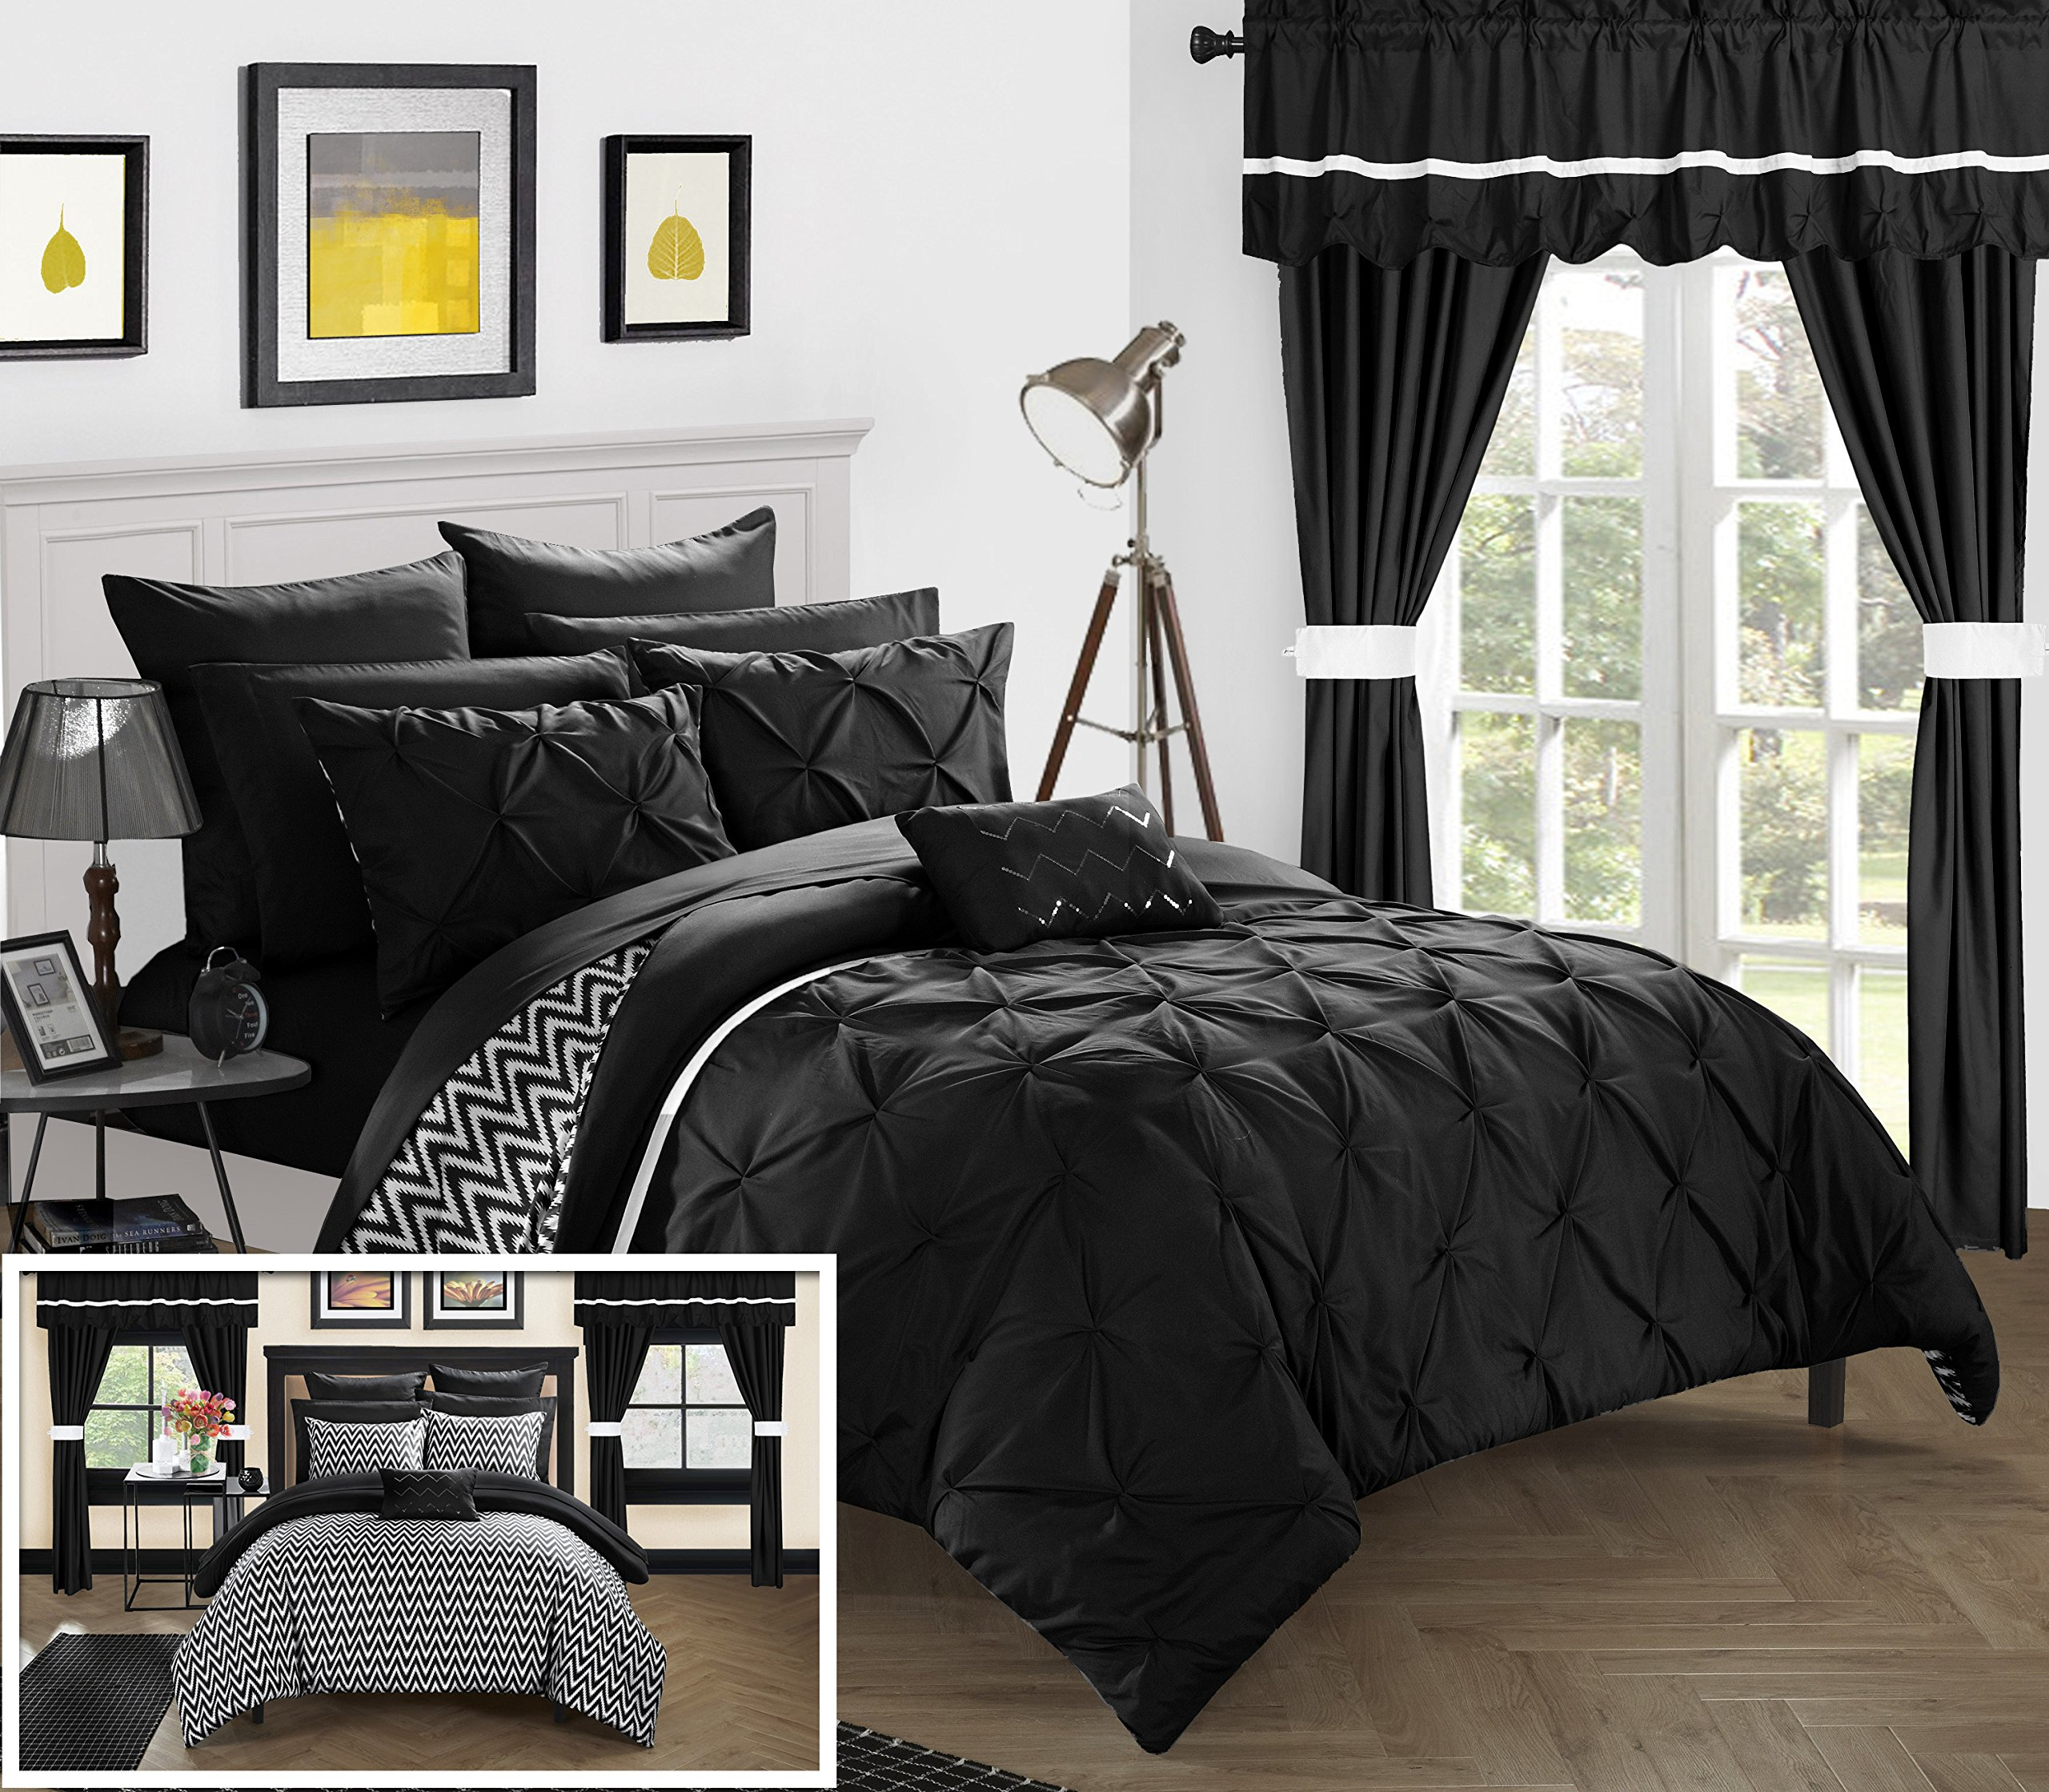 Chic Home CS0575-AN 20 Piece Jacksonville Complete Bed Room In A Bag Super Pinch Pleated Design Reversible Chevron Pattern Comforter Set, Sheets Window Treatments And Decorative Pillows, King, Black